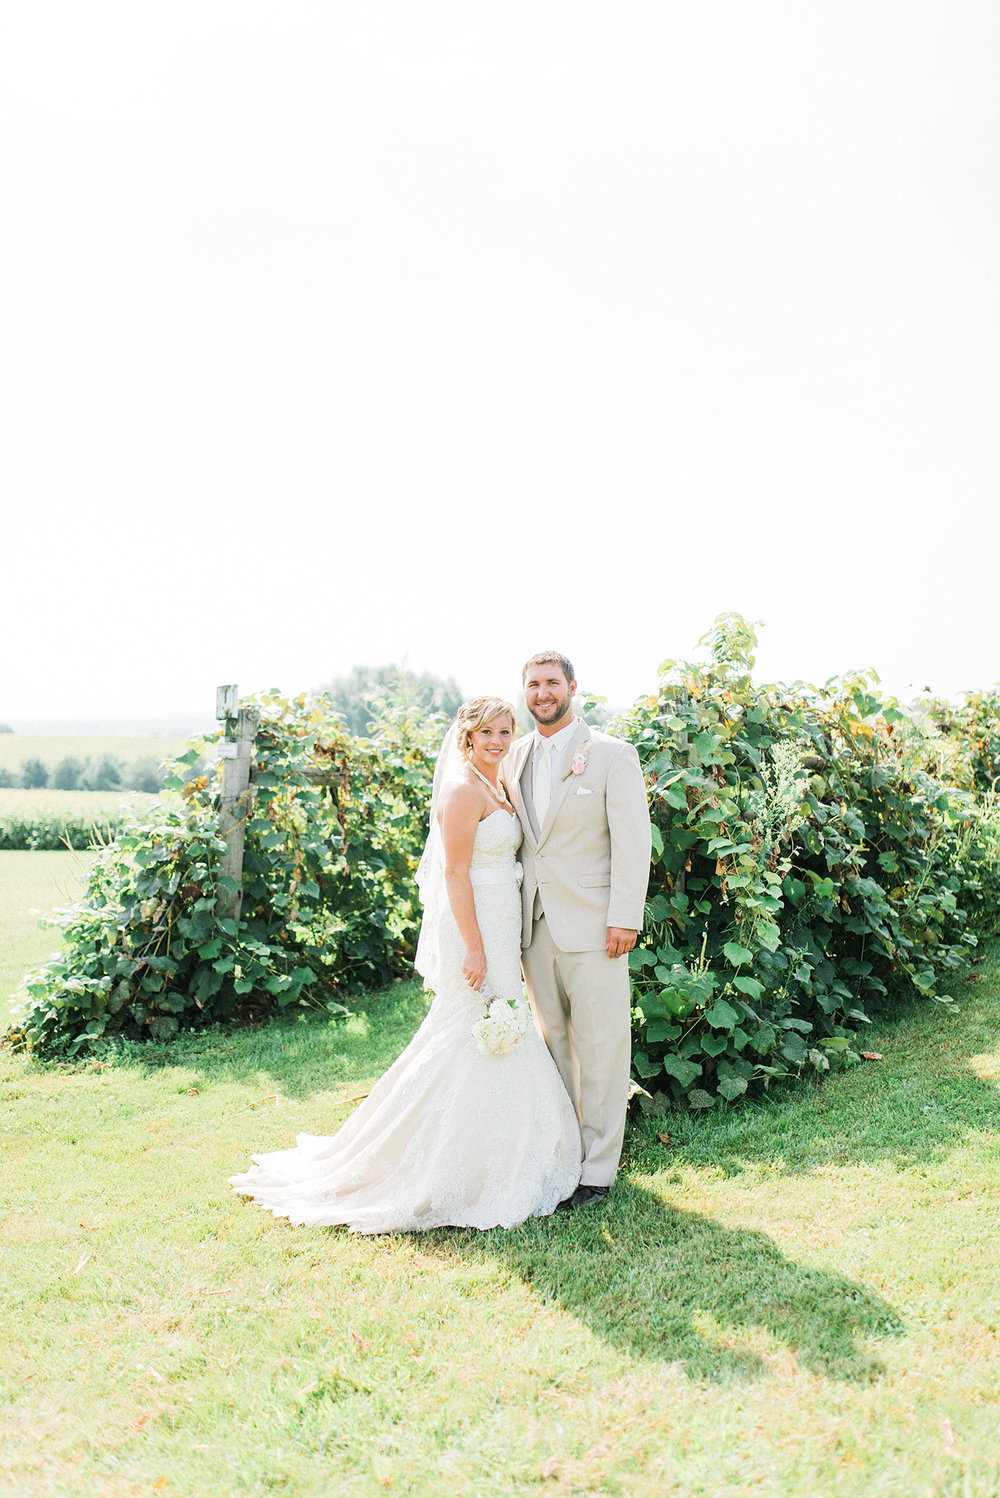 Bride and groom at a vineyard wedding in Traer, IA